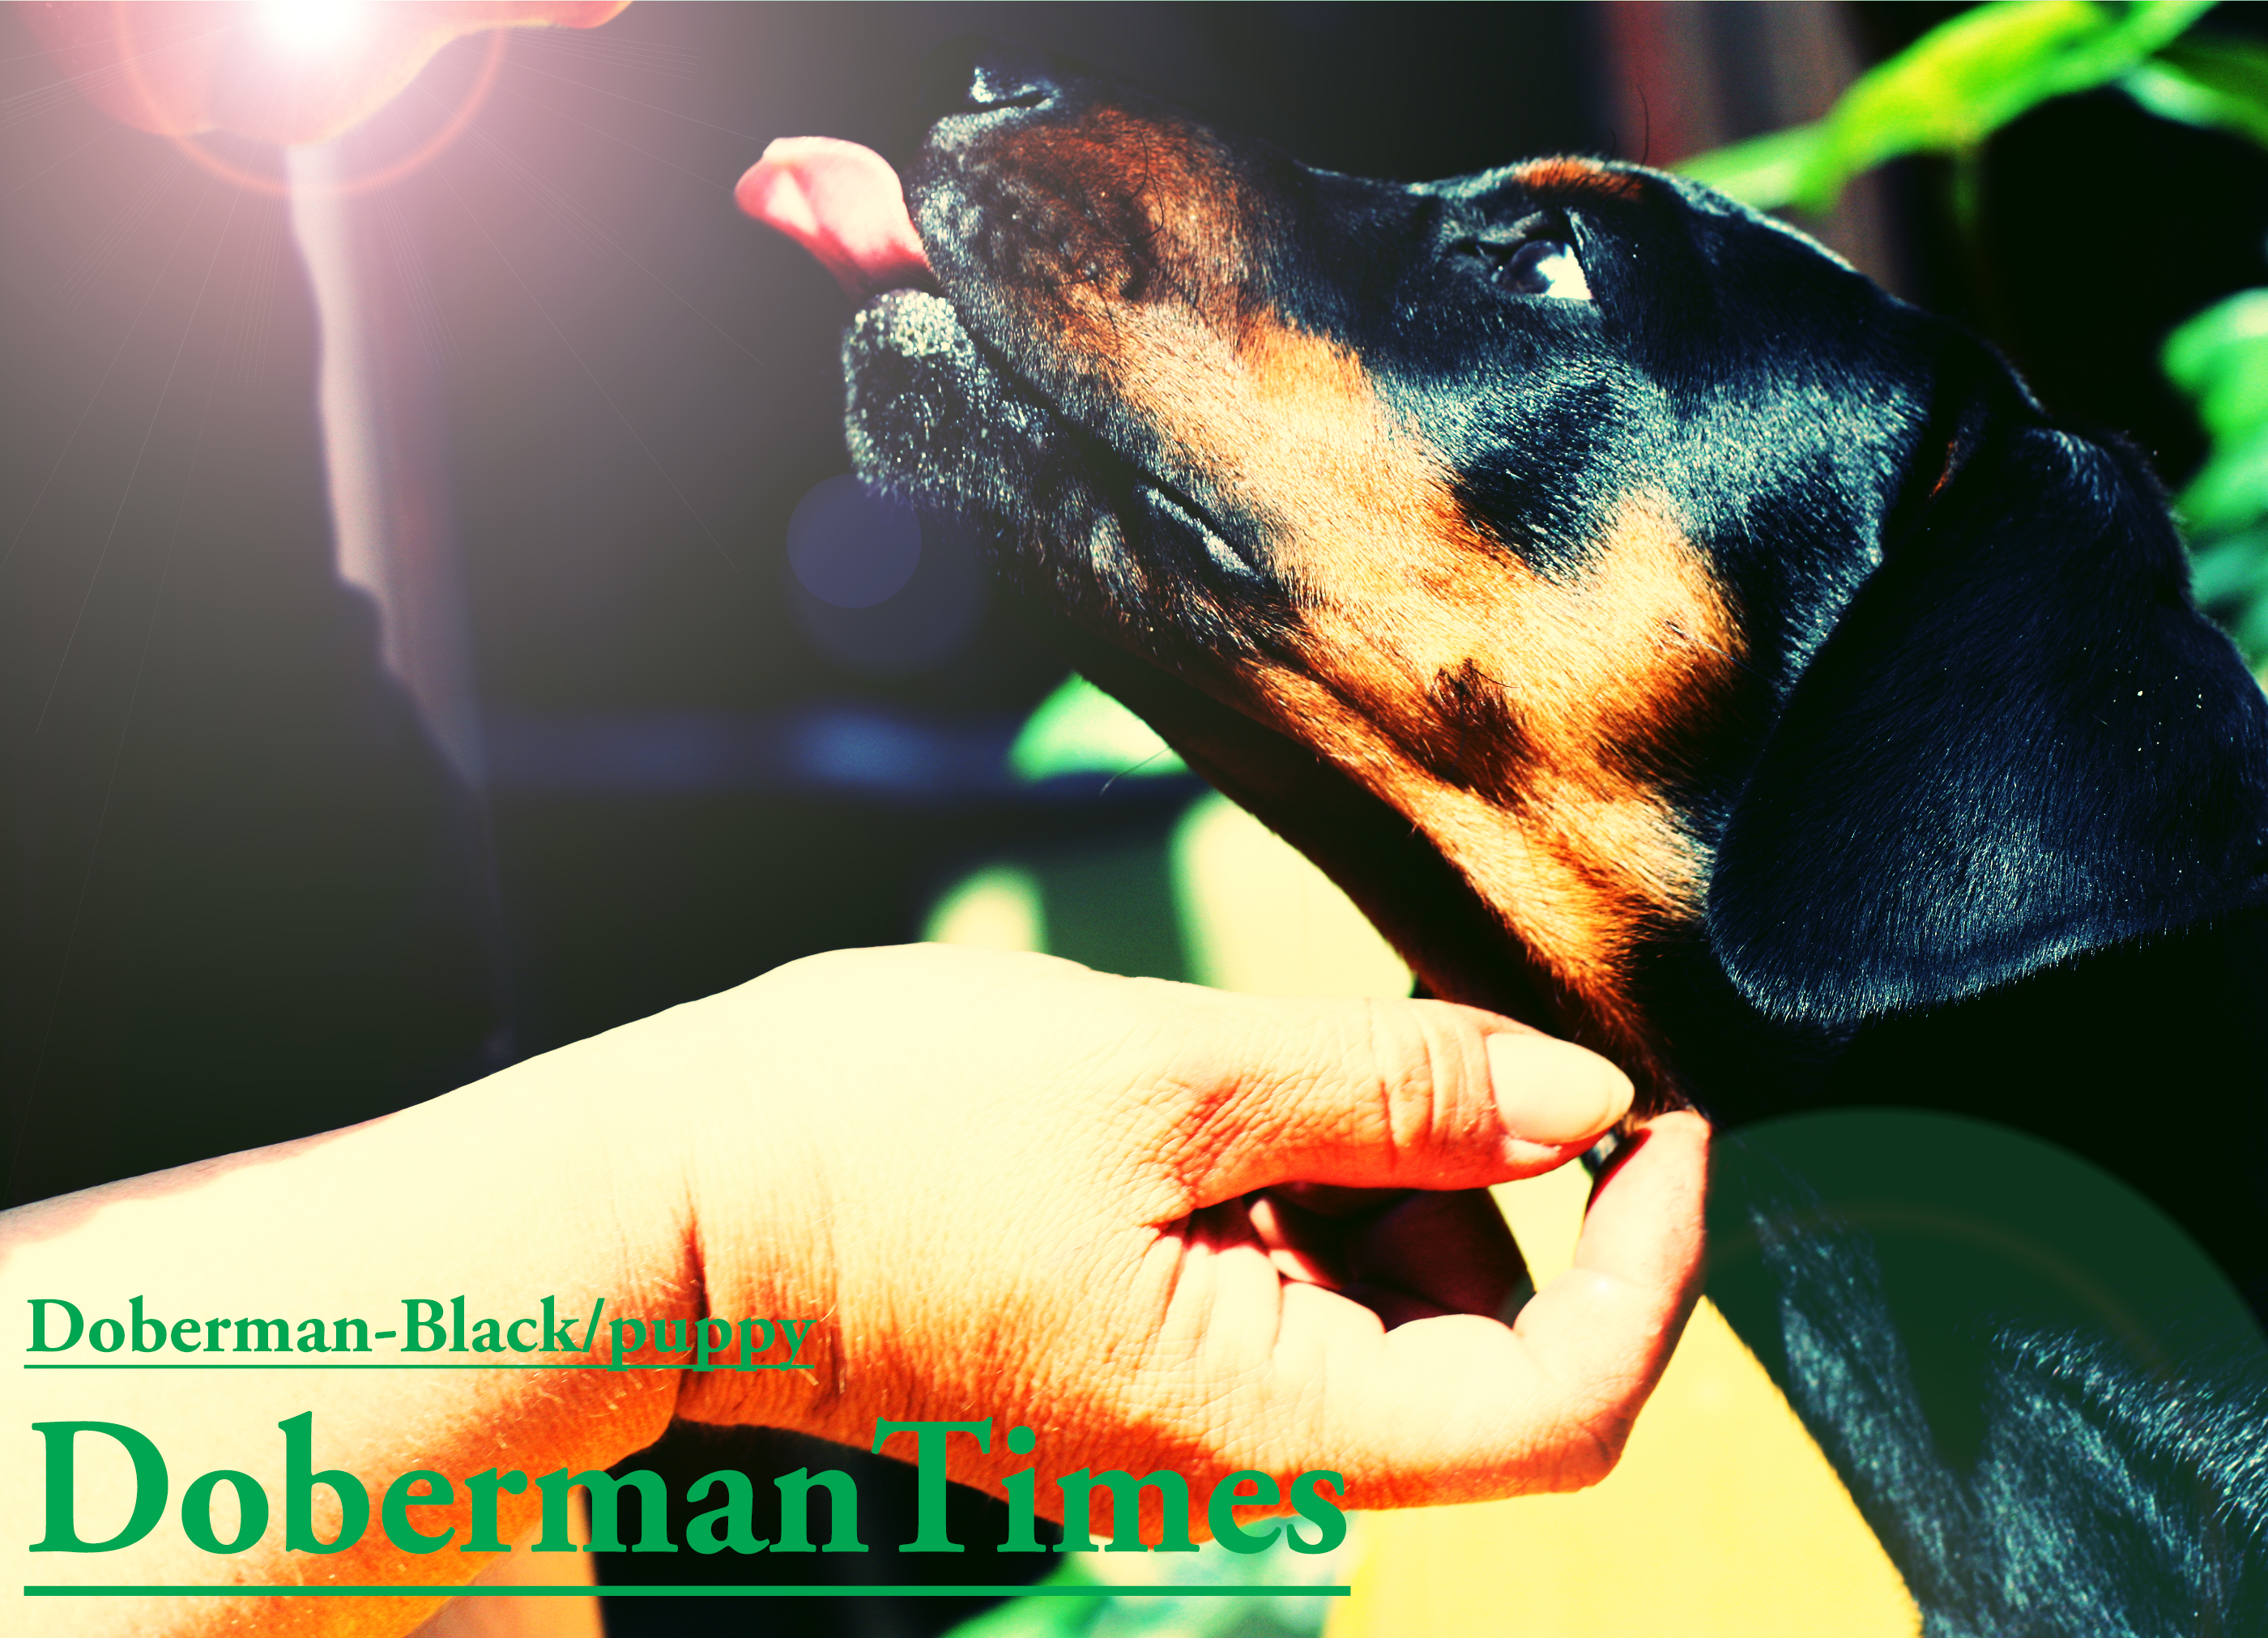 Doberman-Black/puppy